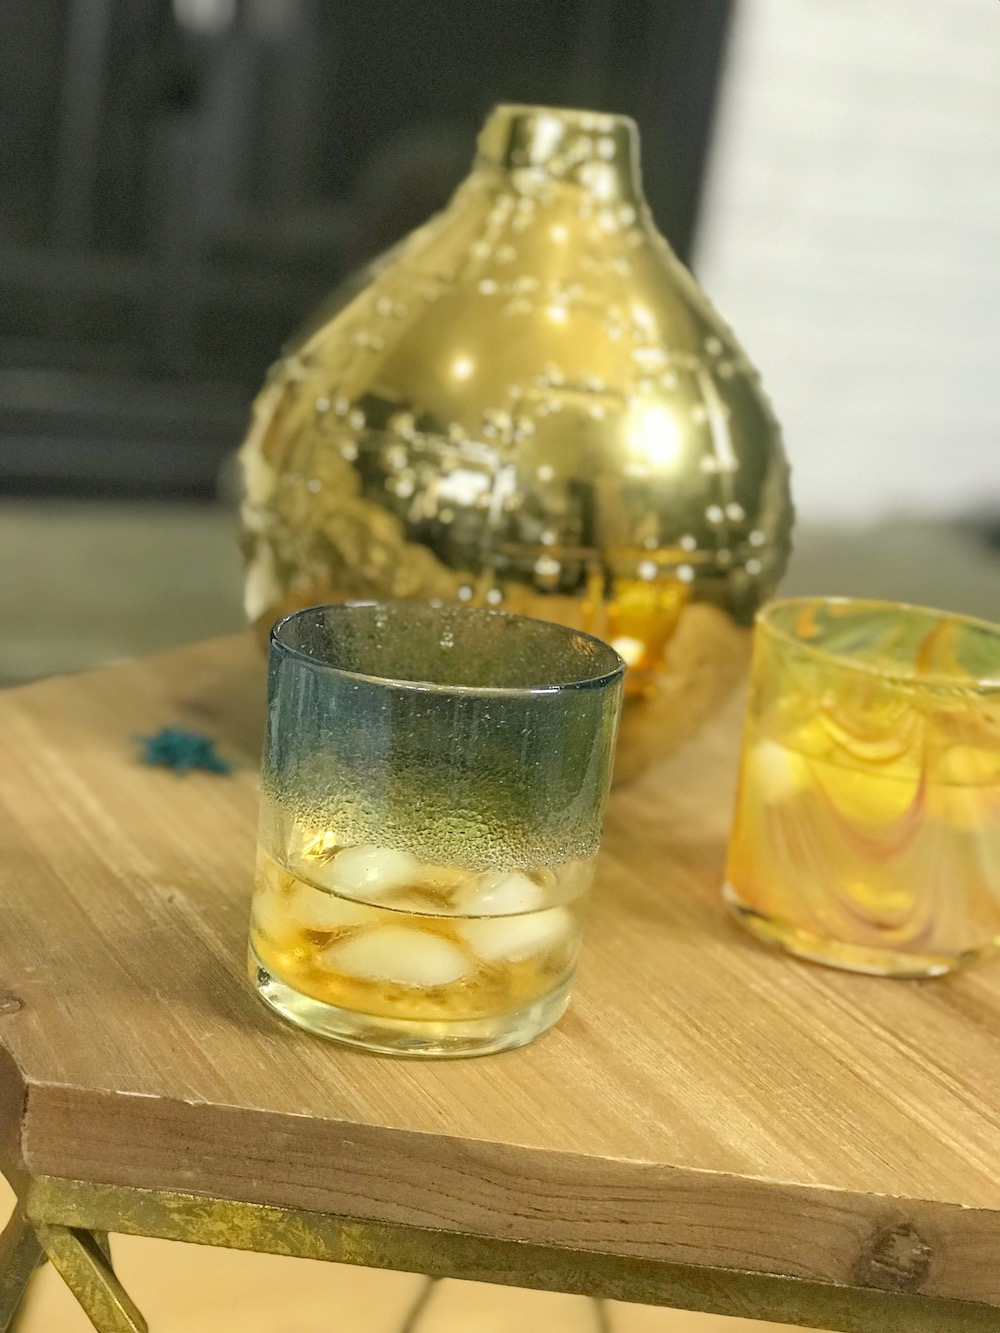 cocktail glass drinkware from JFR Glass close on side table